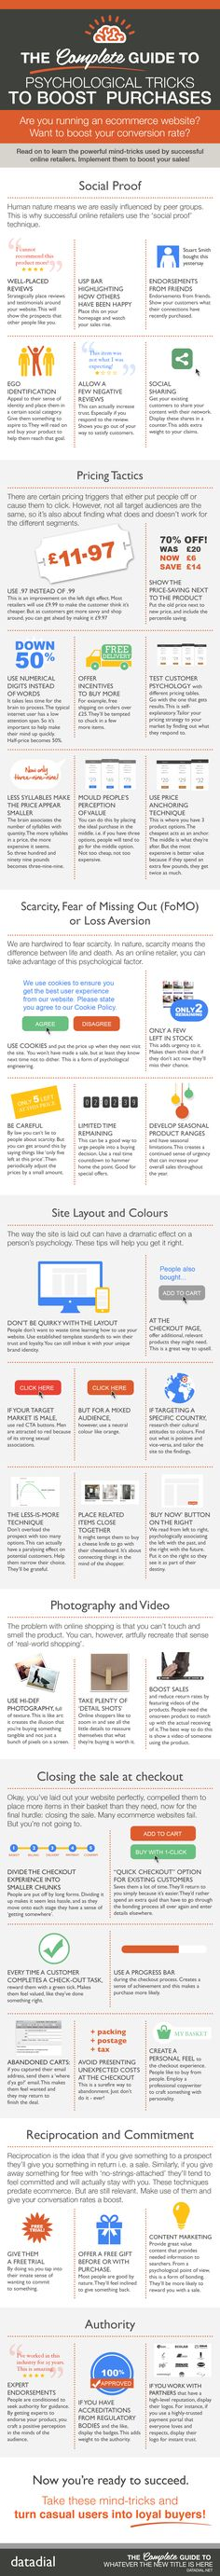 The Complete Guide To Psychological Tricks To Boost Pur on Behance